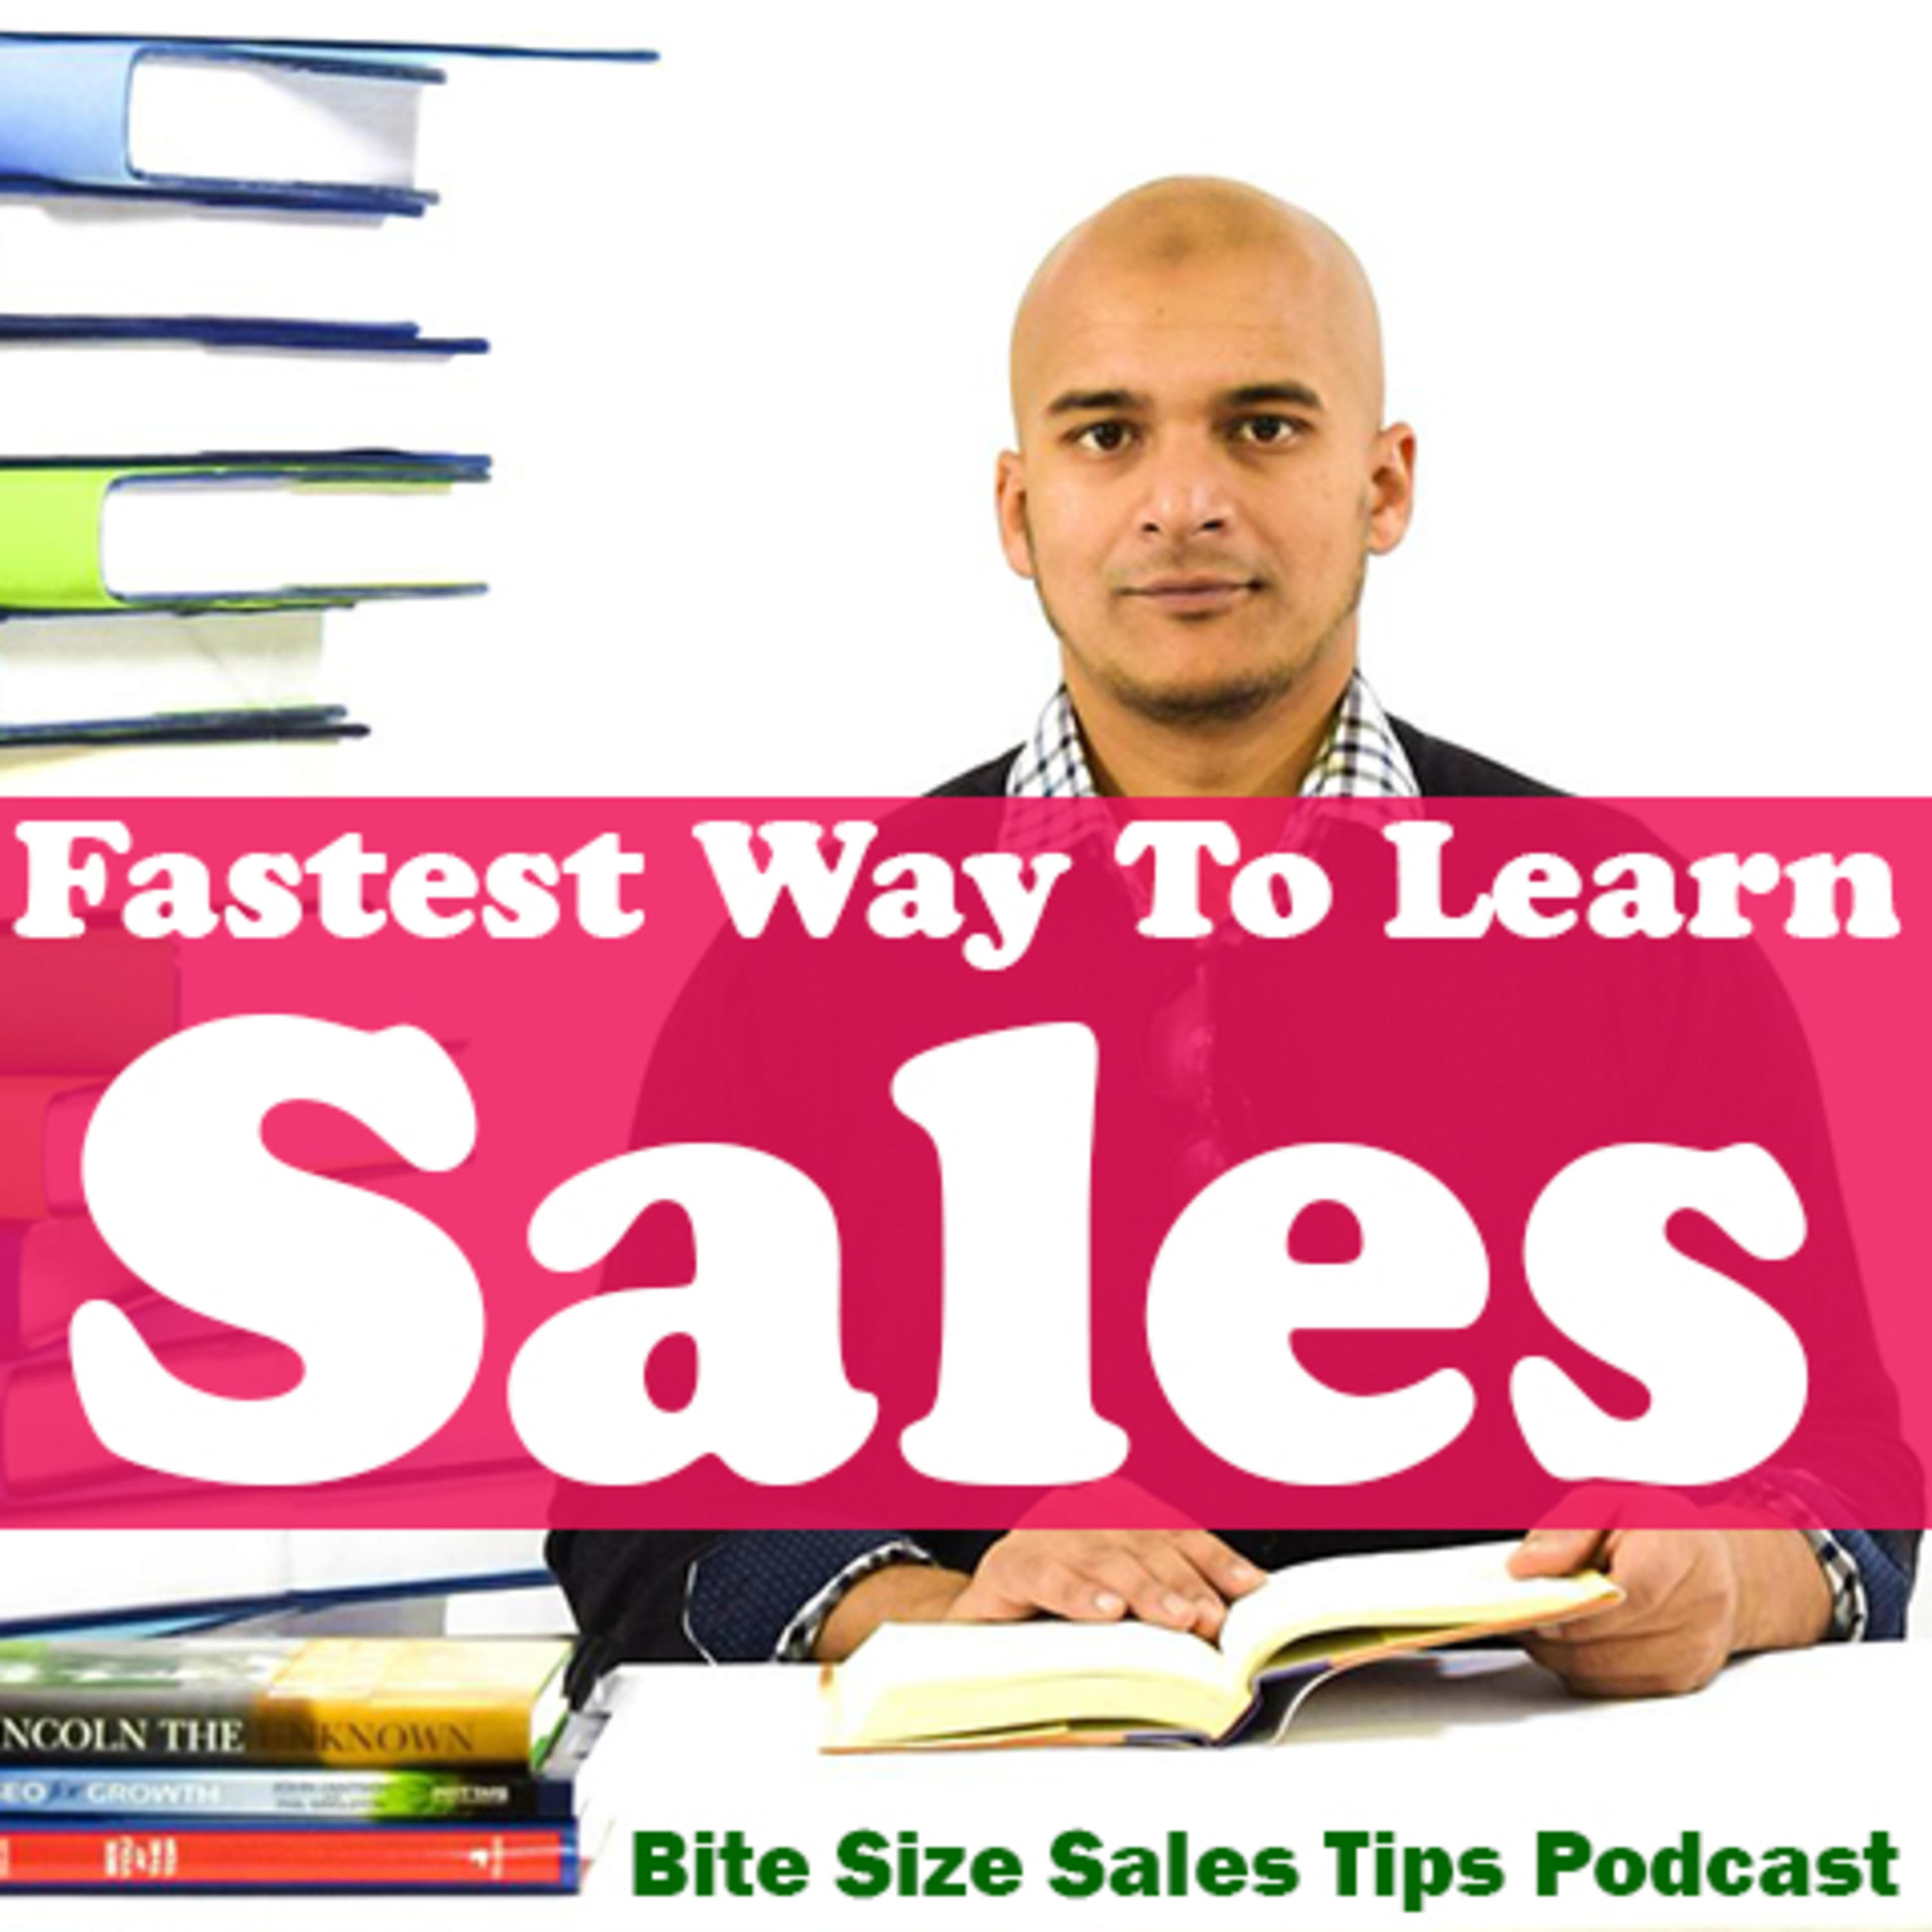 Fastest Way To Learn Sales | Training, Coaching & Motivation